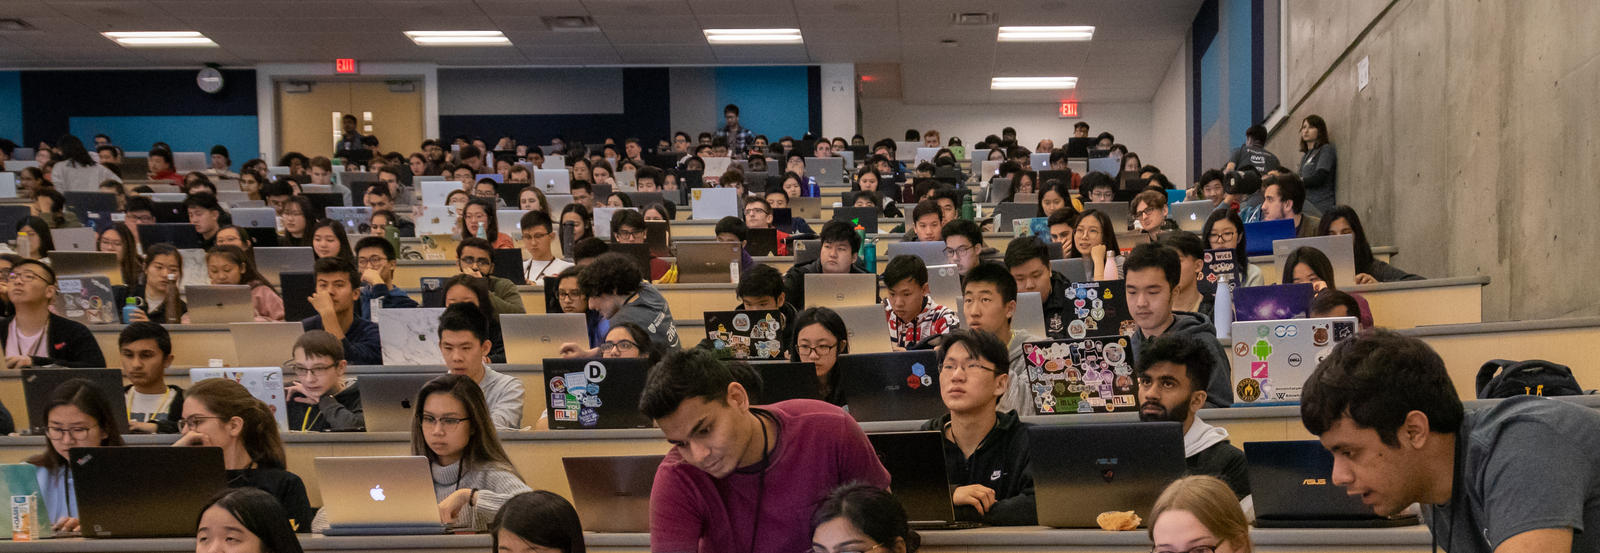 Students in lecture hall with laptops